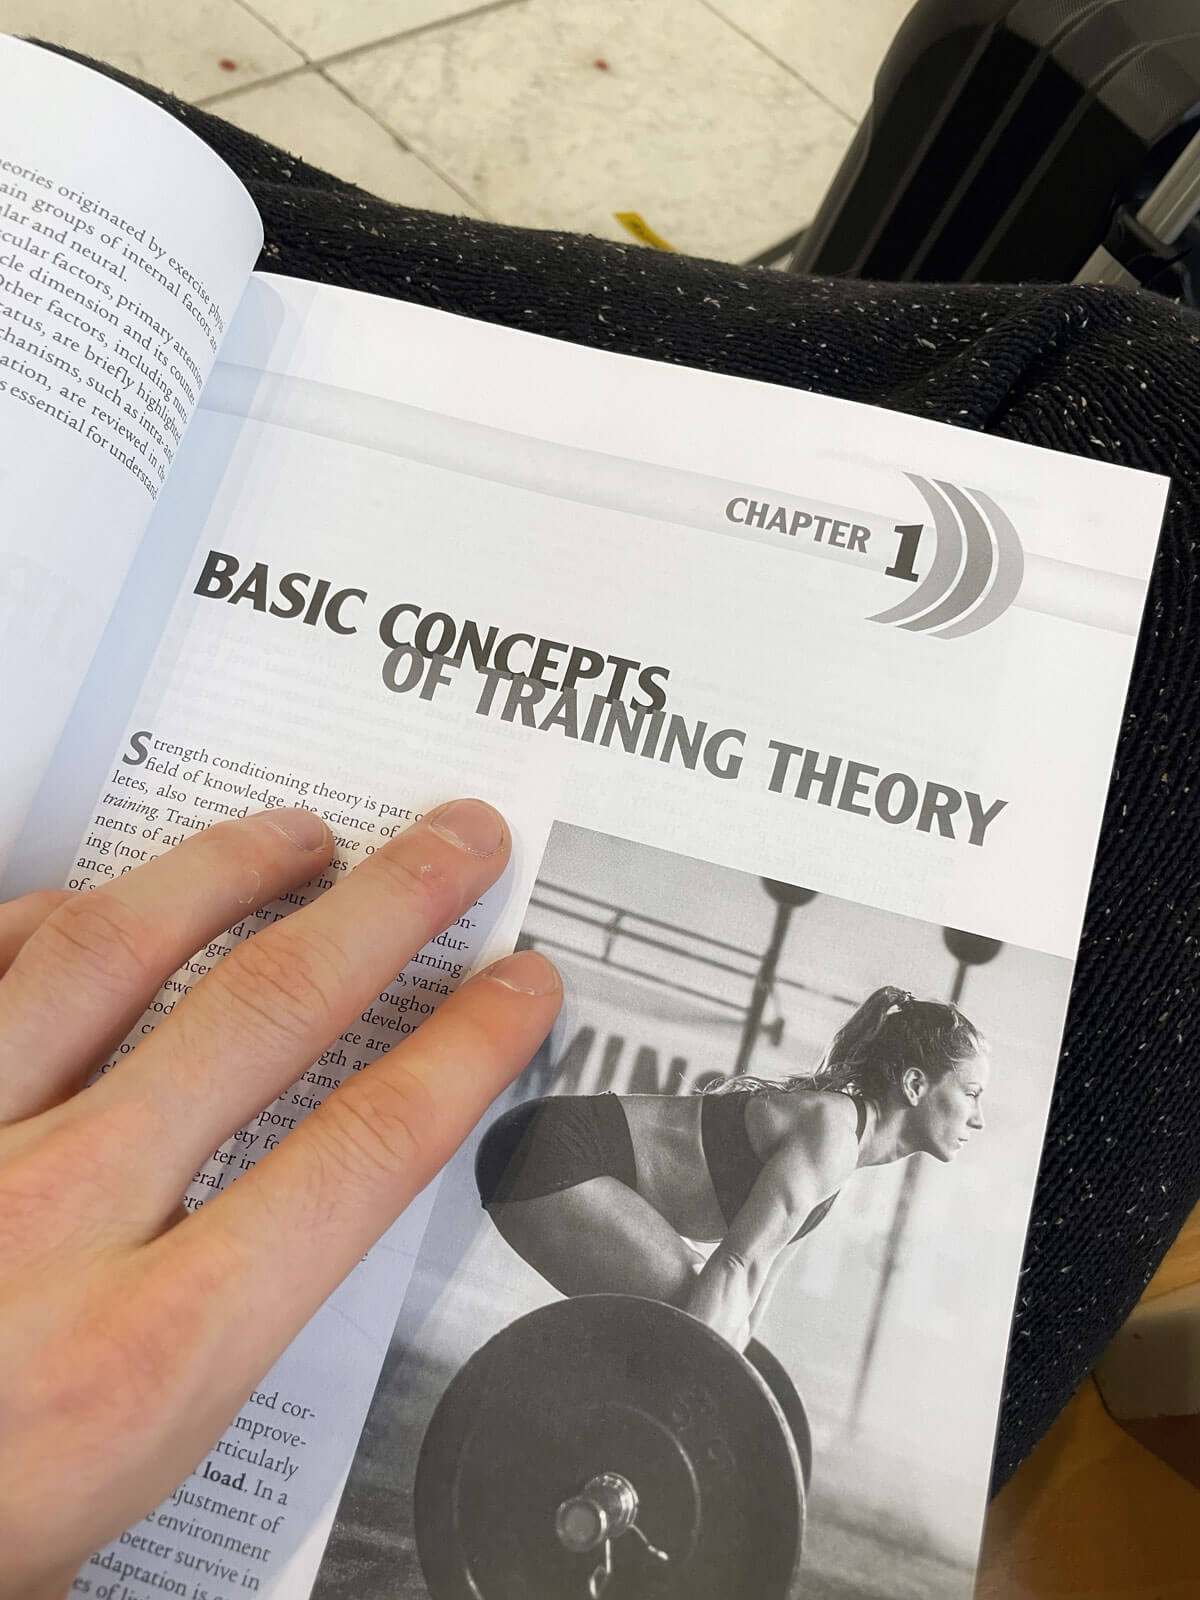 Science and Practice of Strength Training by Vladimir Zatsiorsky - Chapter 1